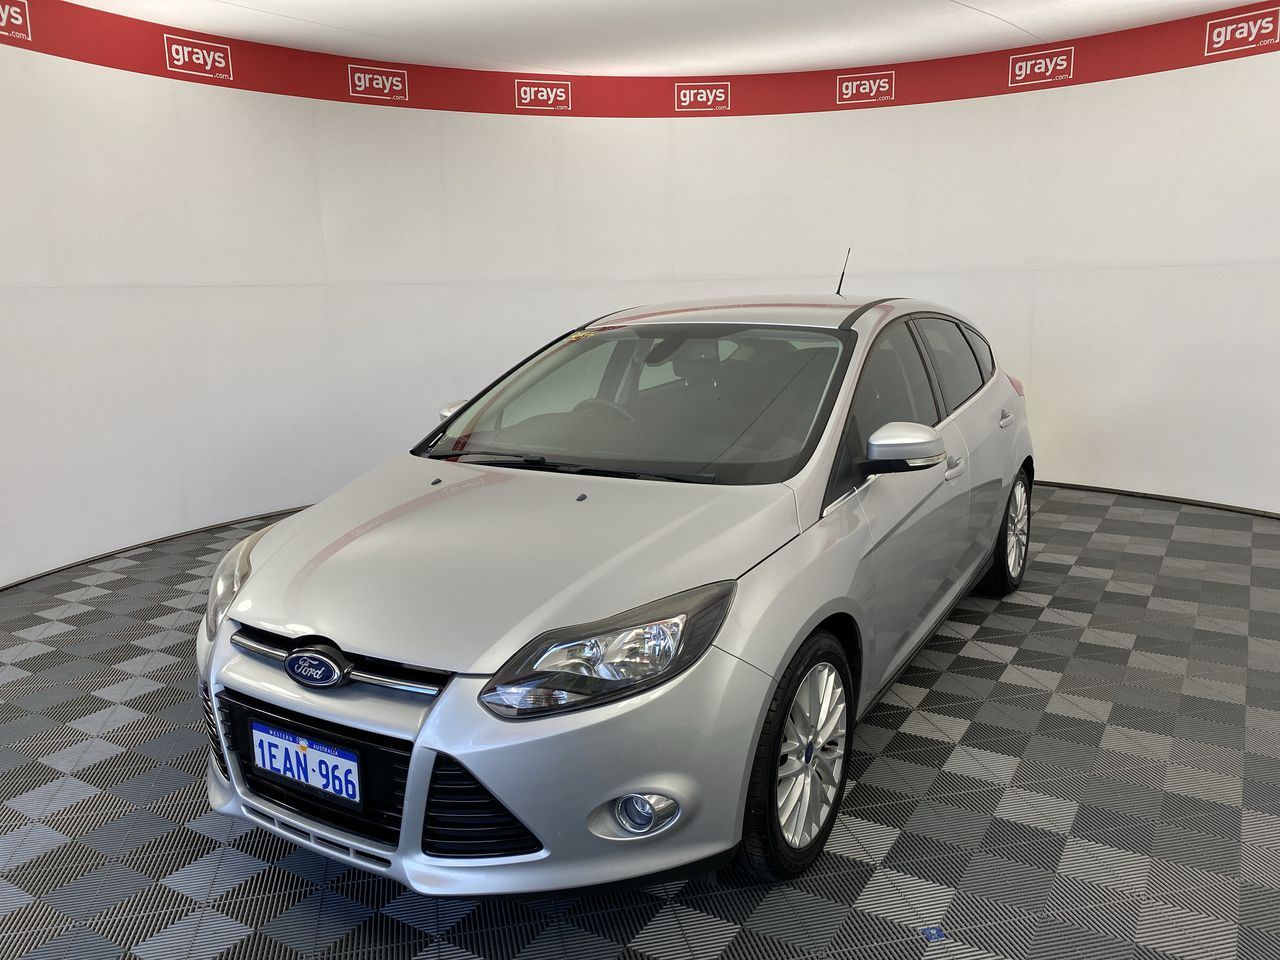 2012 Ford Focus Sport LW Automatic Hatchback